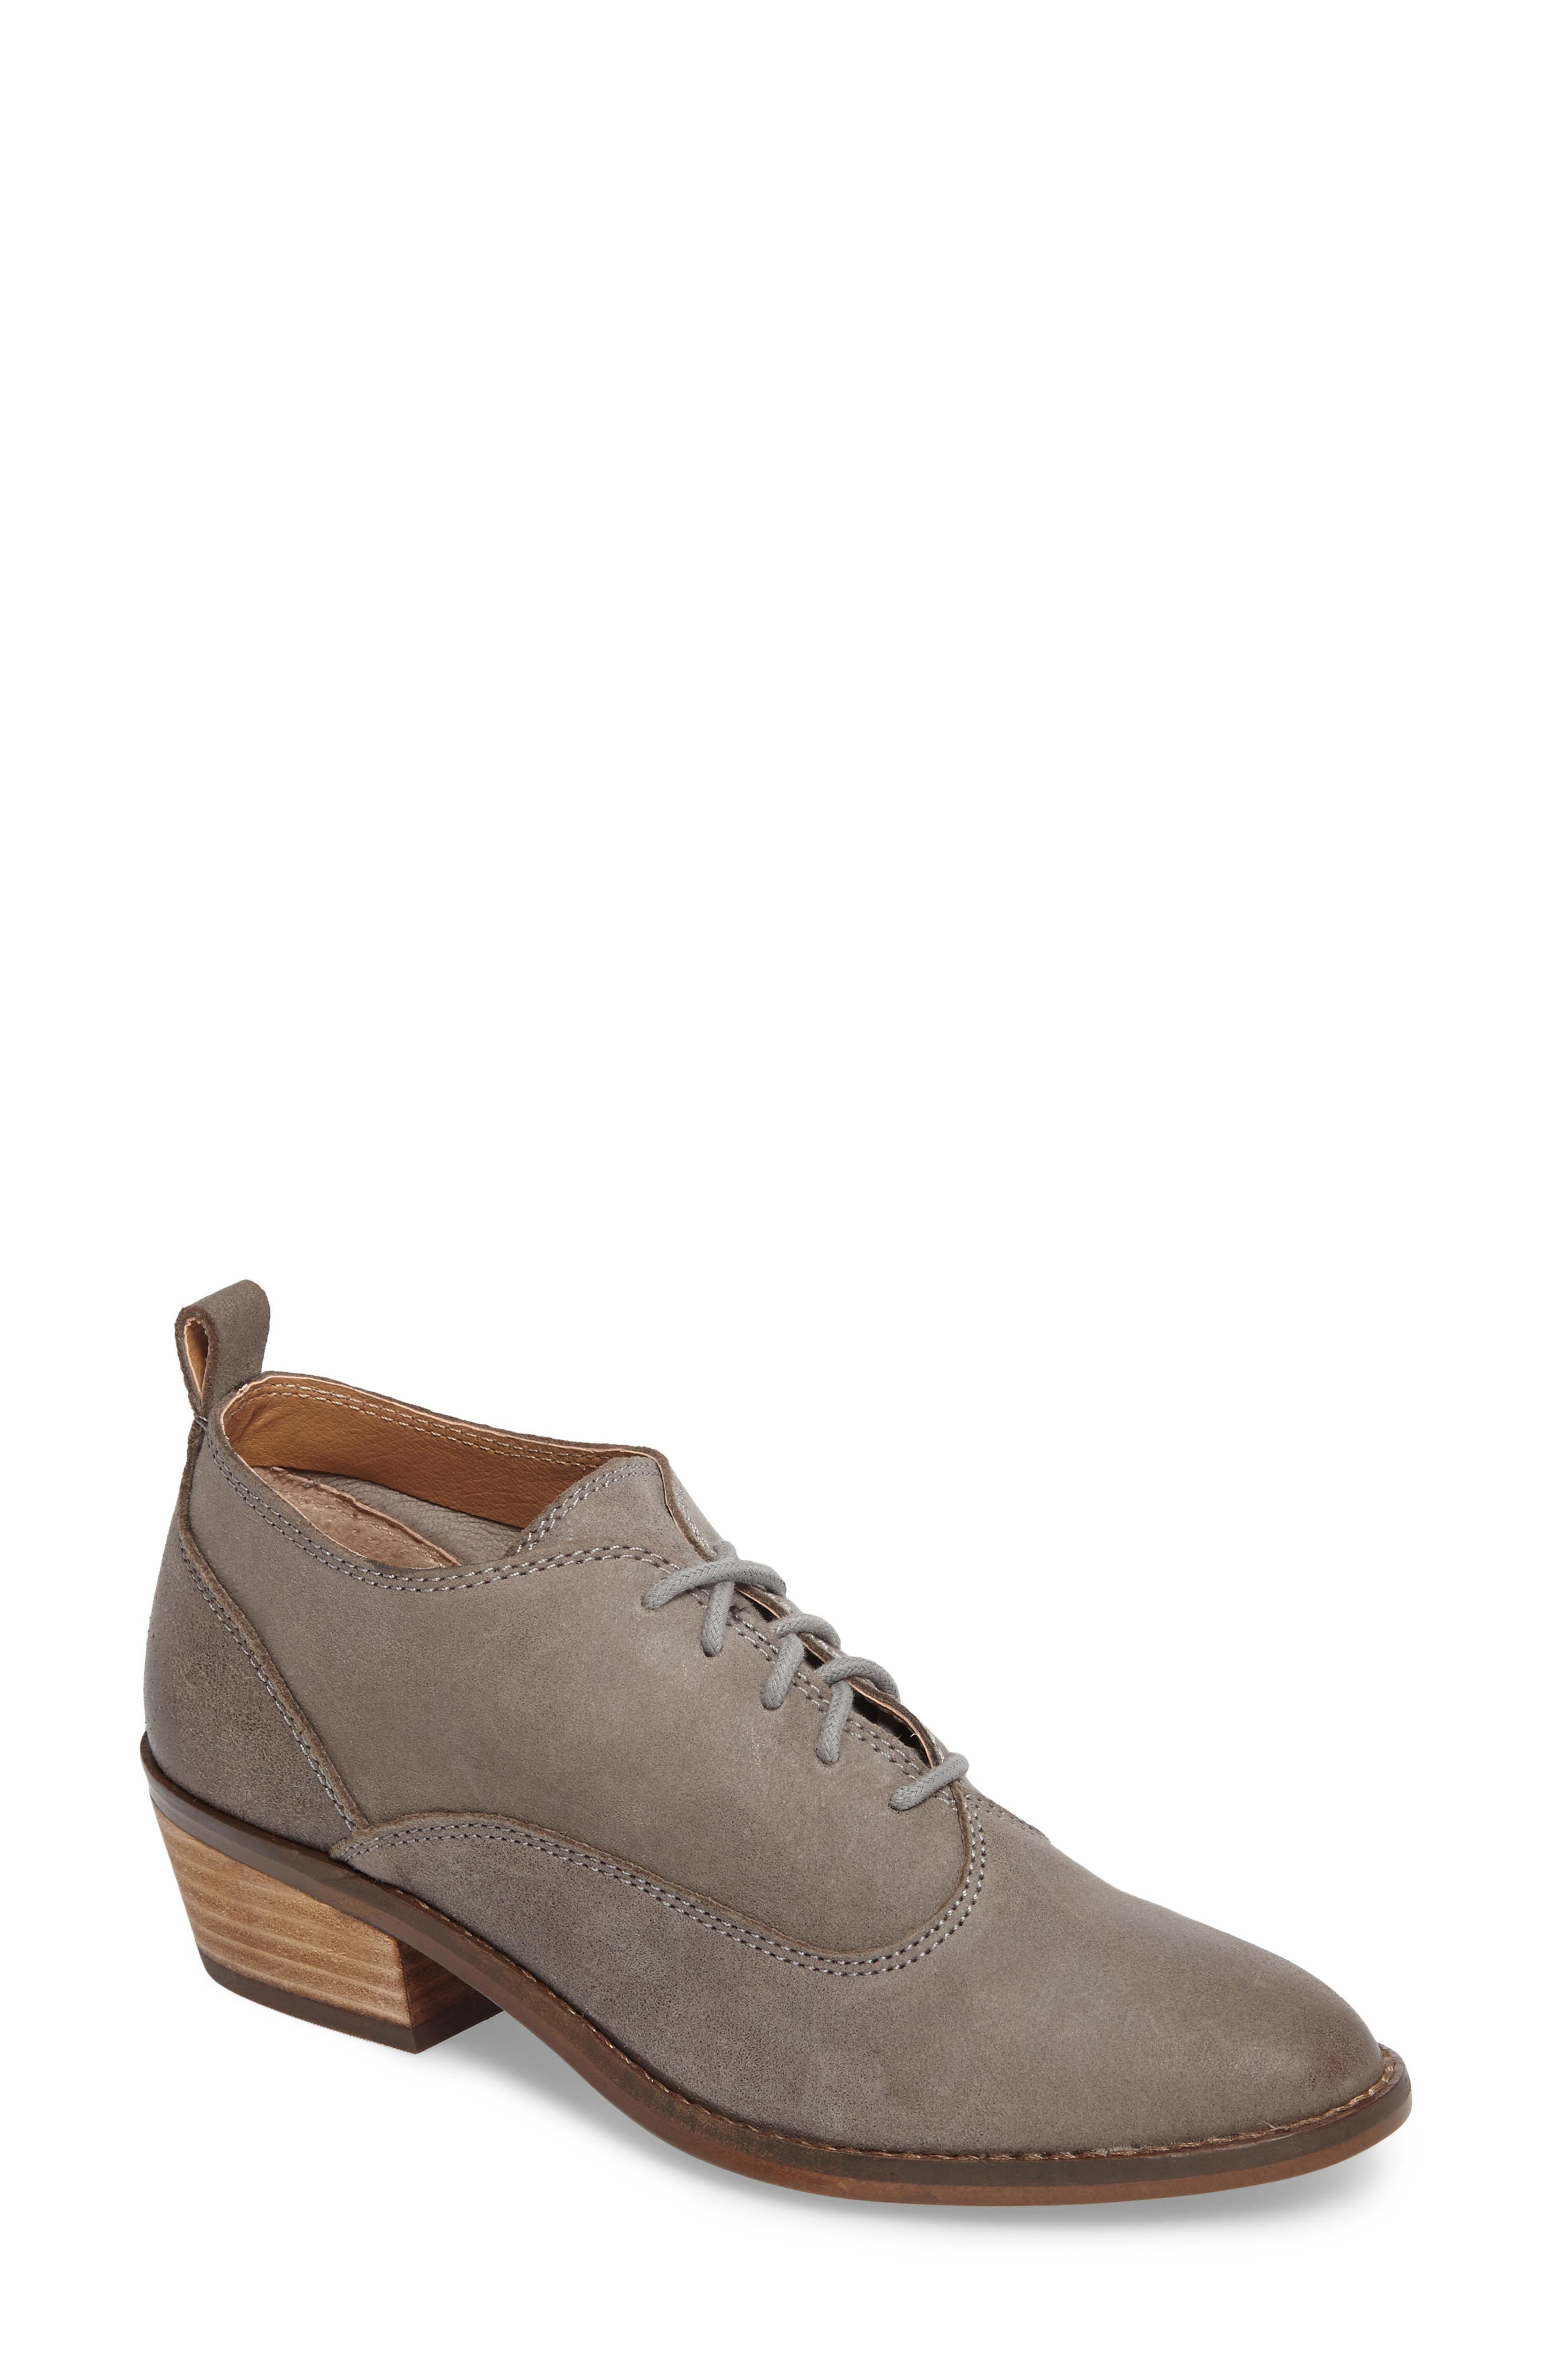 Alternate Image 1 Selected - Lucky Brand Fantine Lace-Up Bootie (Women)